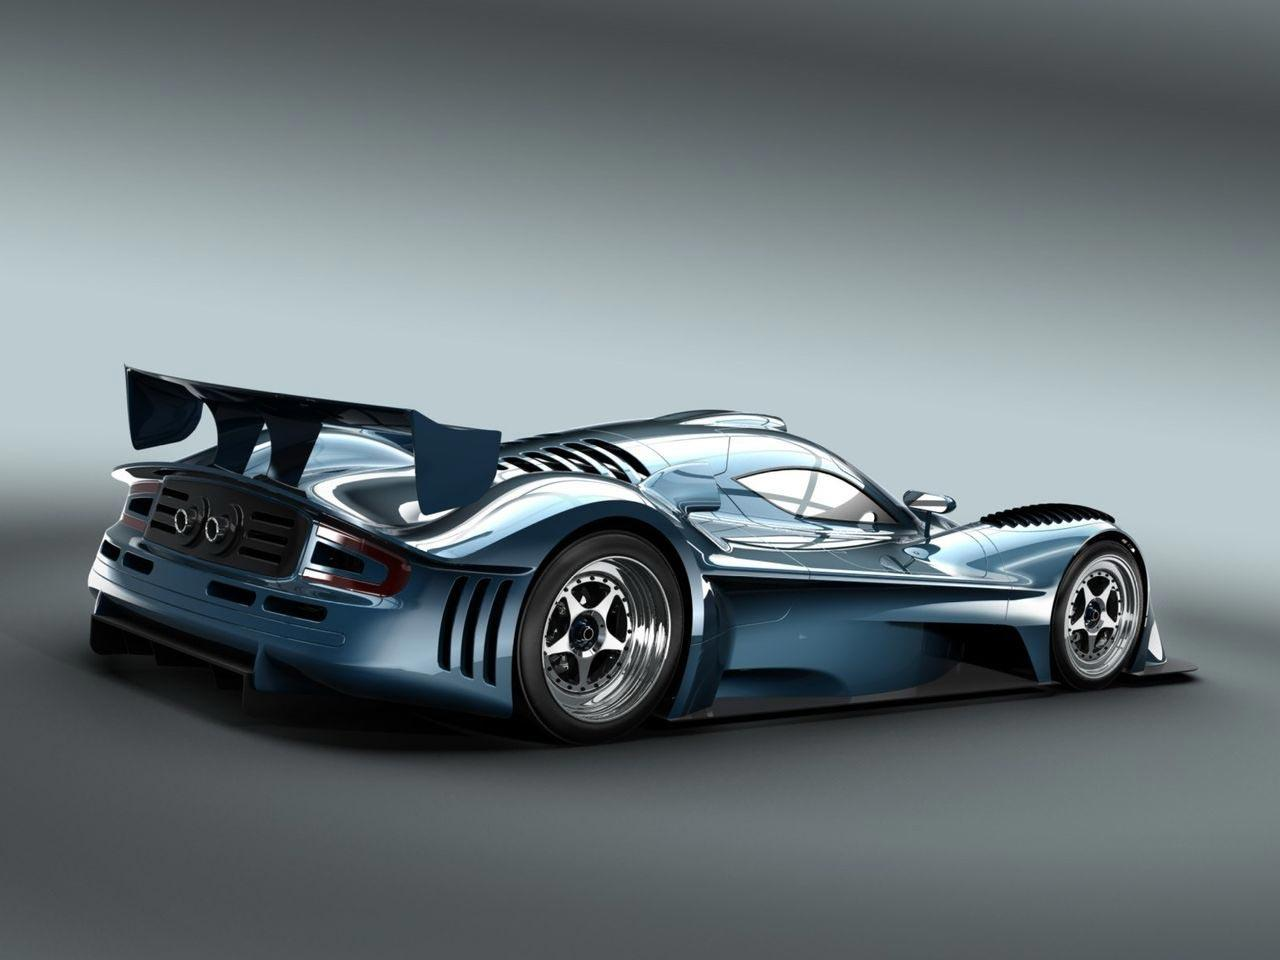 Cool Sport Cars Wallpaper Downloads 15883 Full HD Wallpaper ...